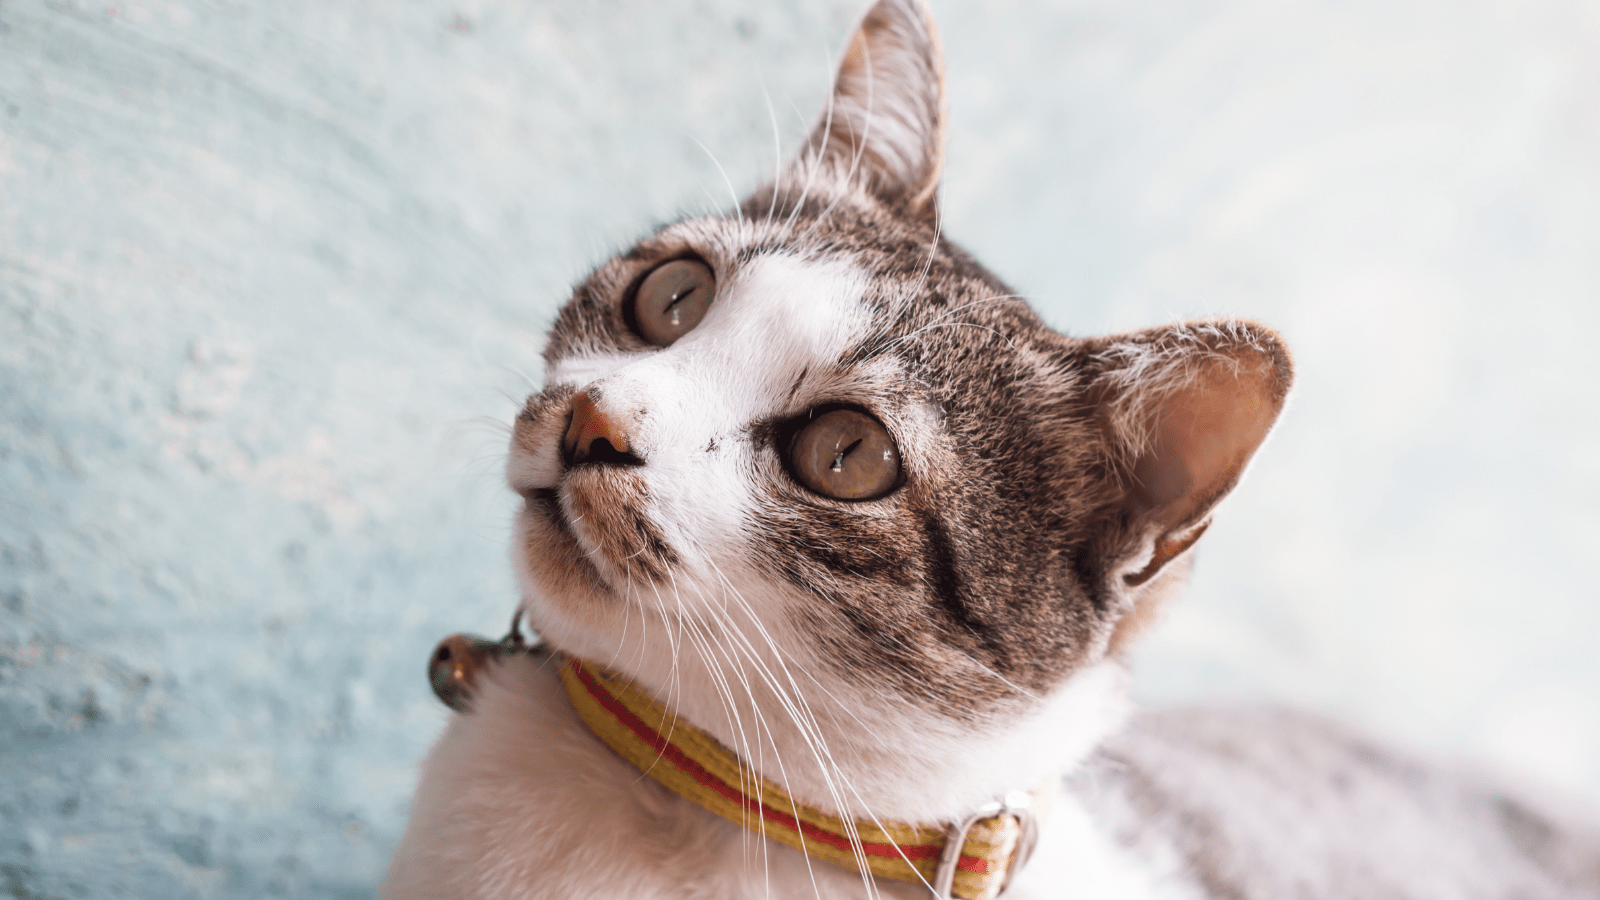 How to train a kitten to wear a collar